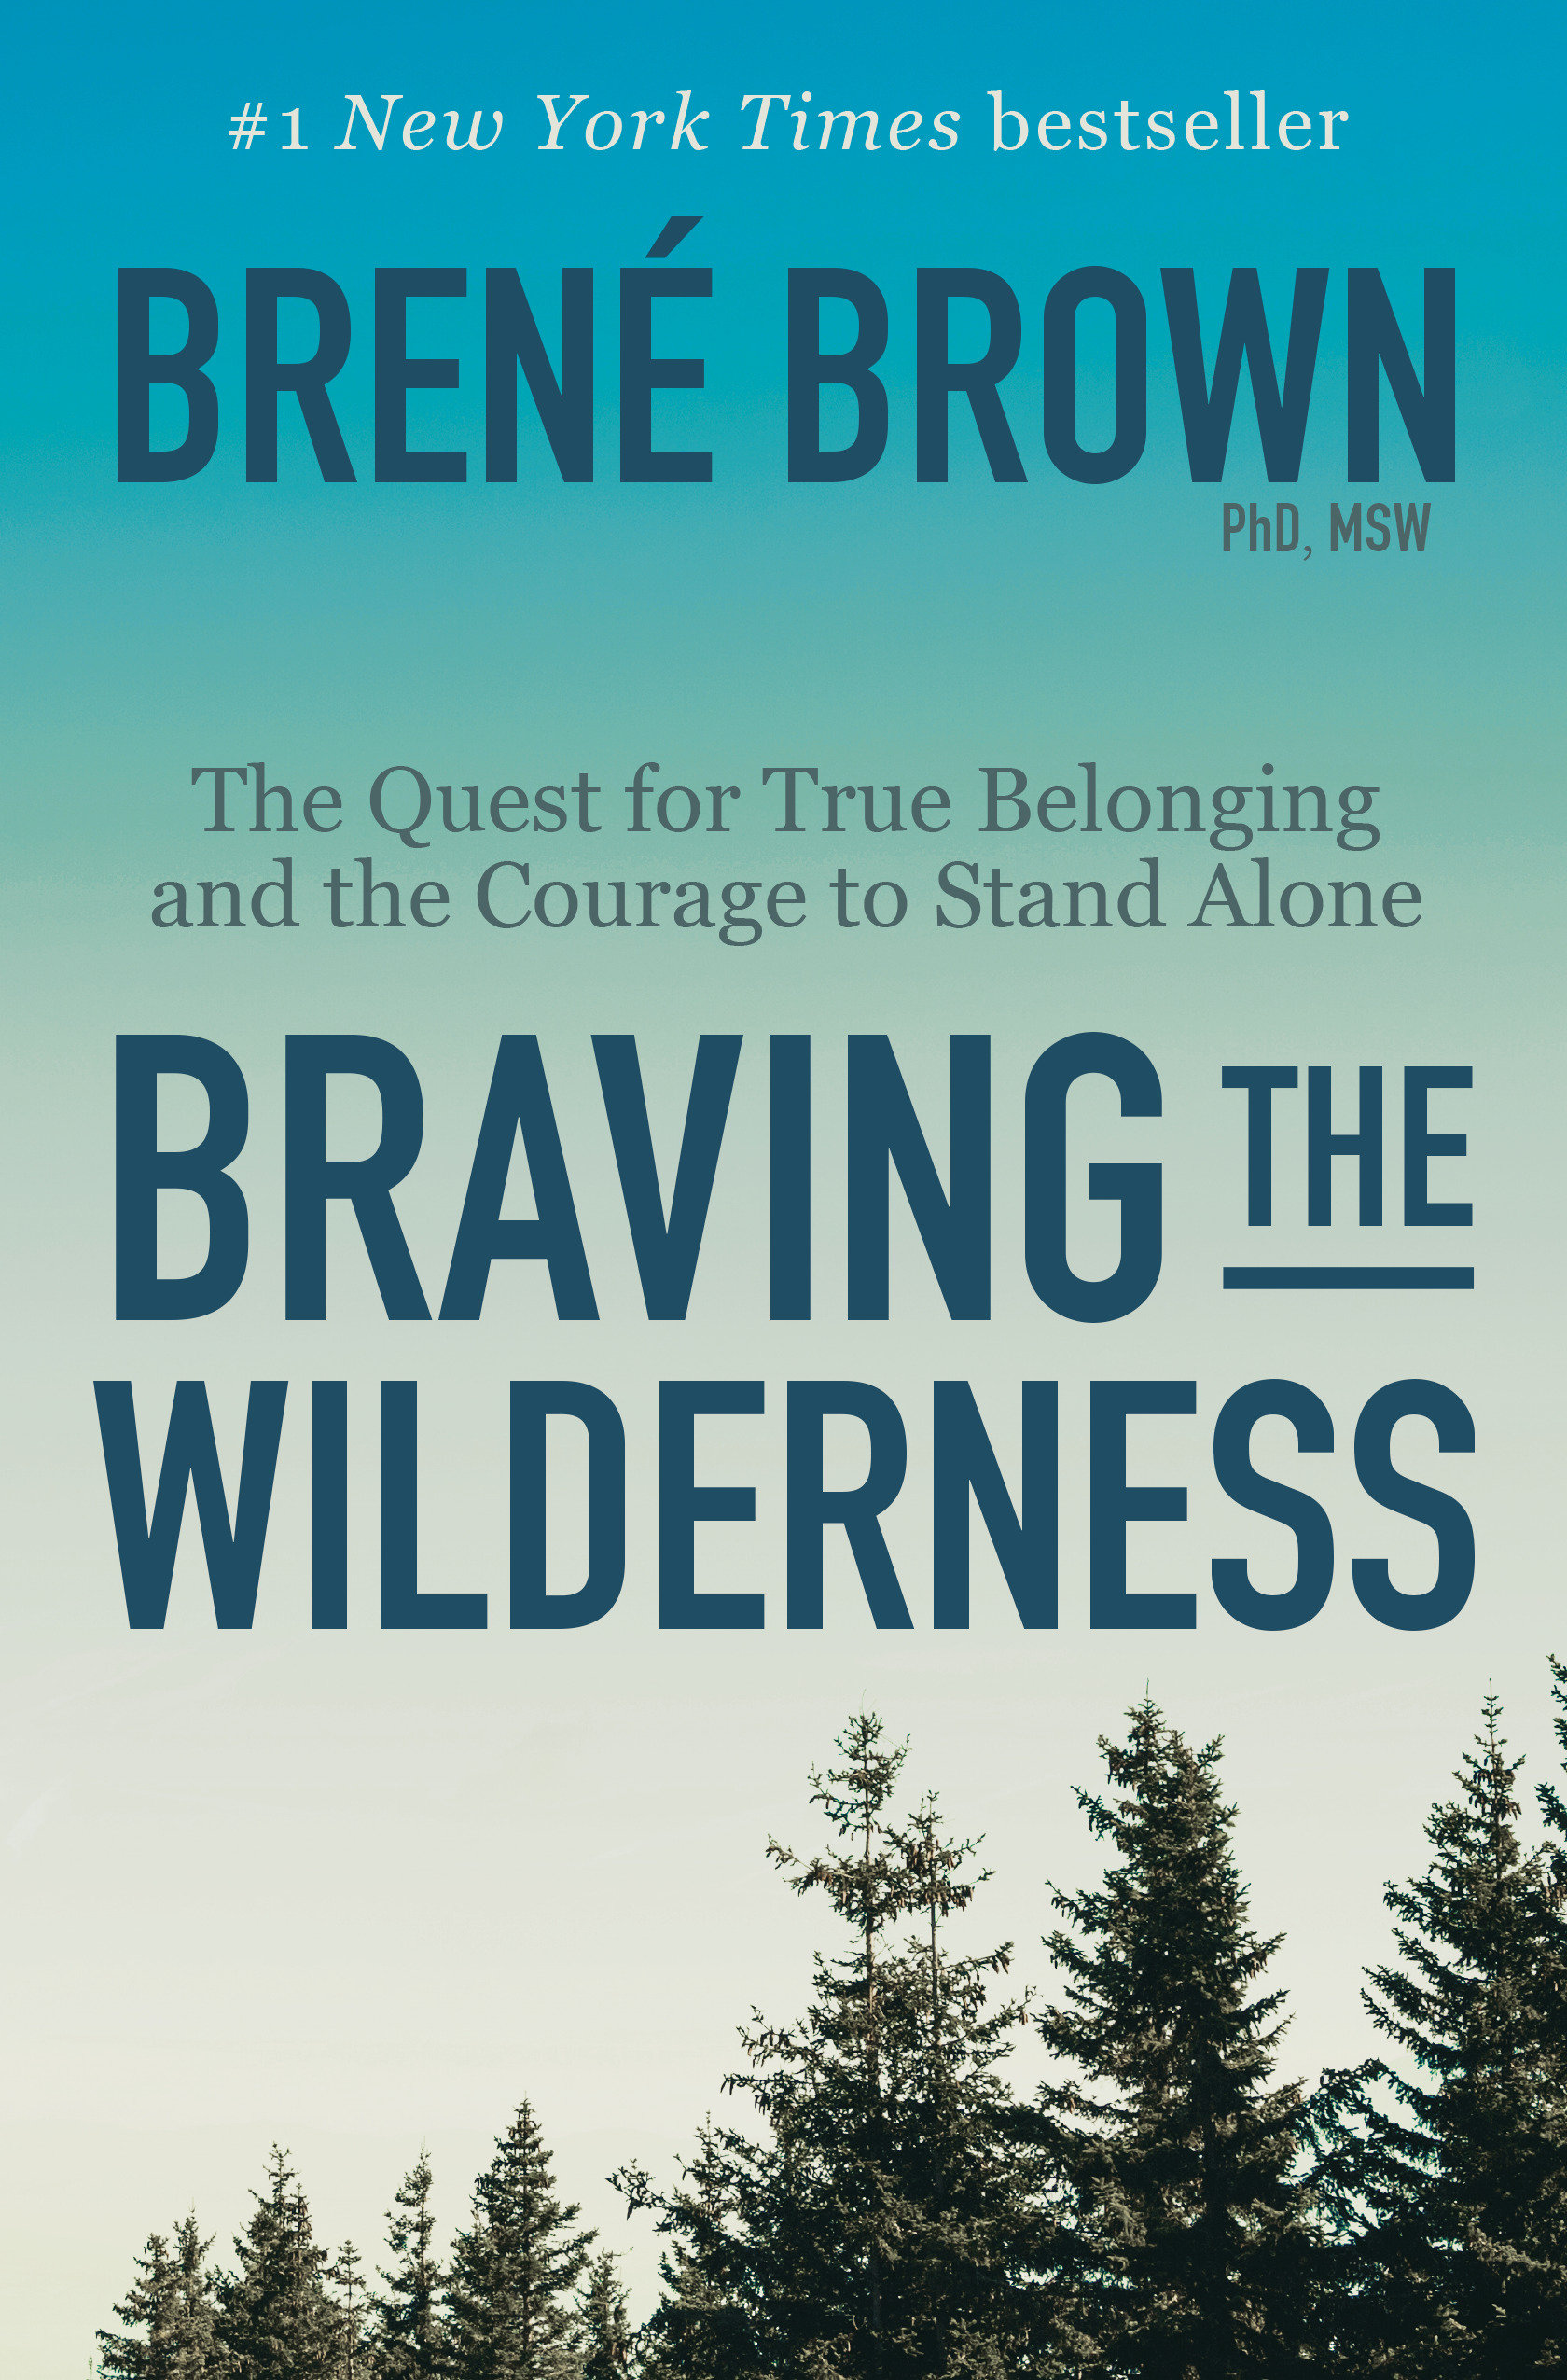 Braving the Wilderness The Quest for True Belonging and the Courage to Stand Alone